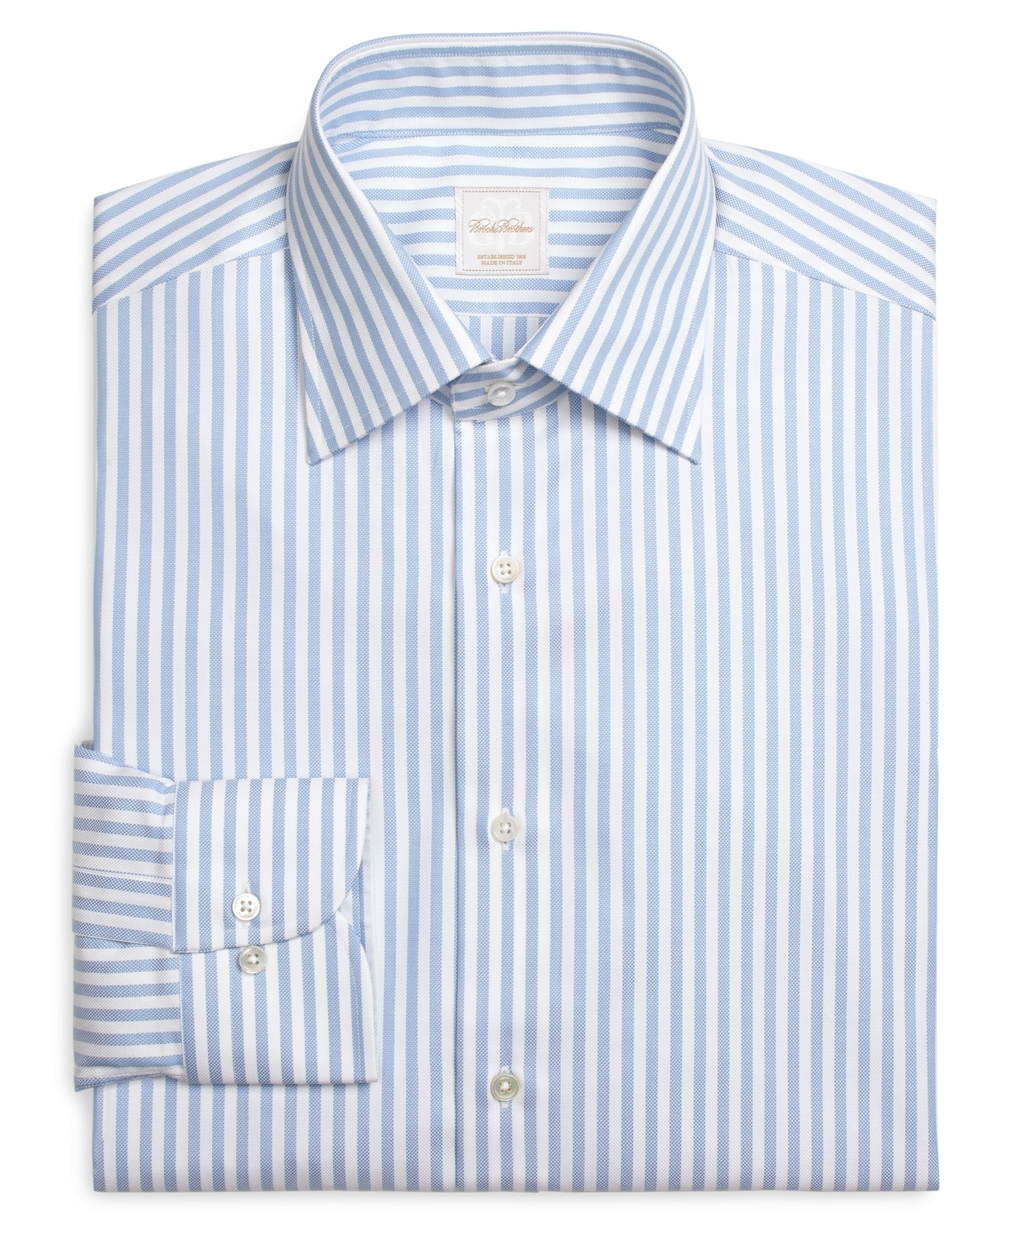 1f5433e6d100f4 Brooks Brothers Blue And White Stripe Luxury Dress Shirt in Blue for ...